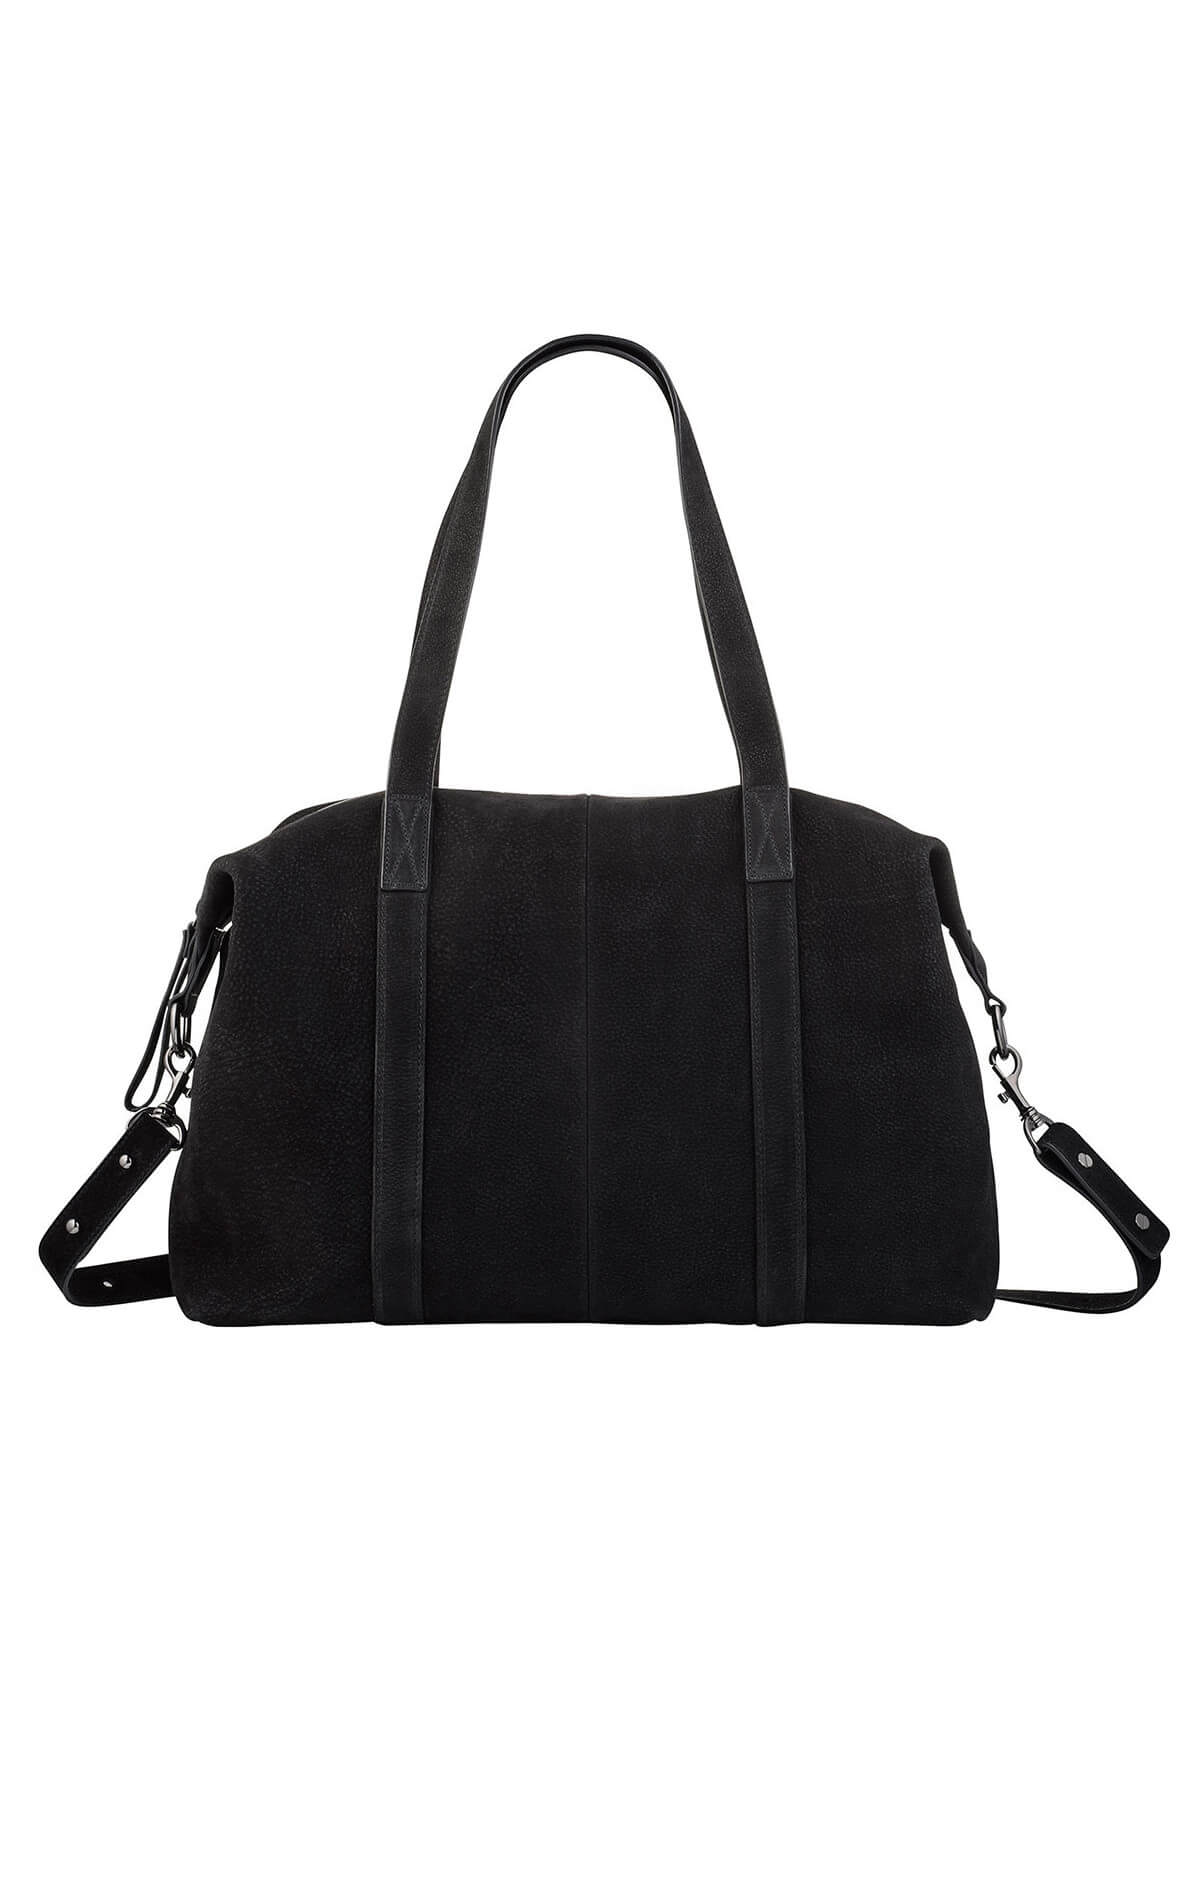 status anxiety fall of hearts leather bag black